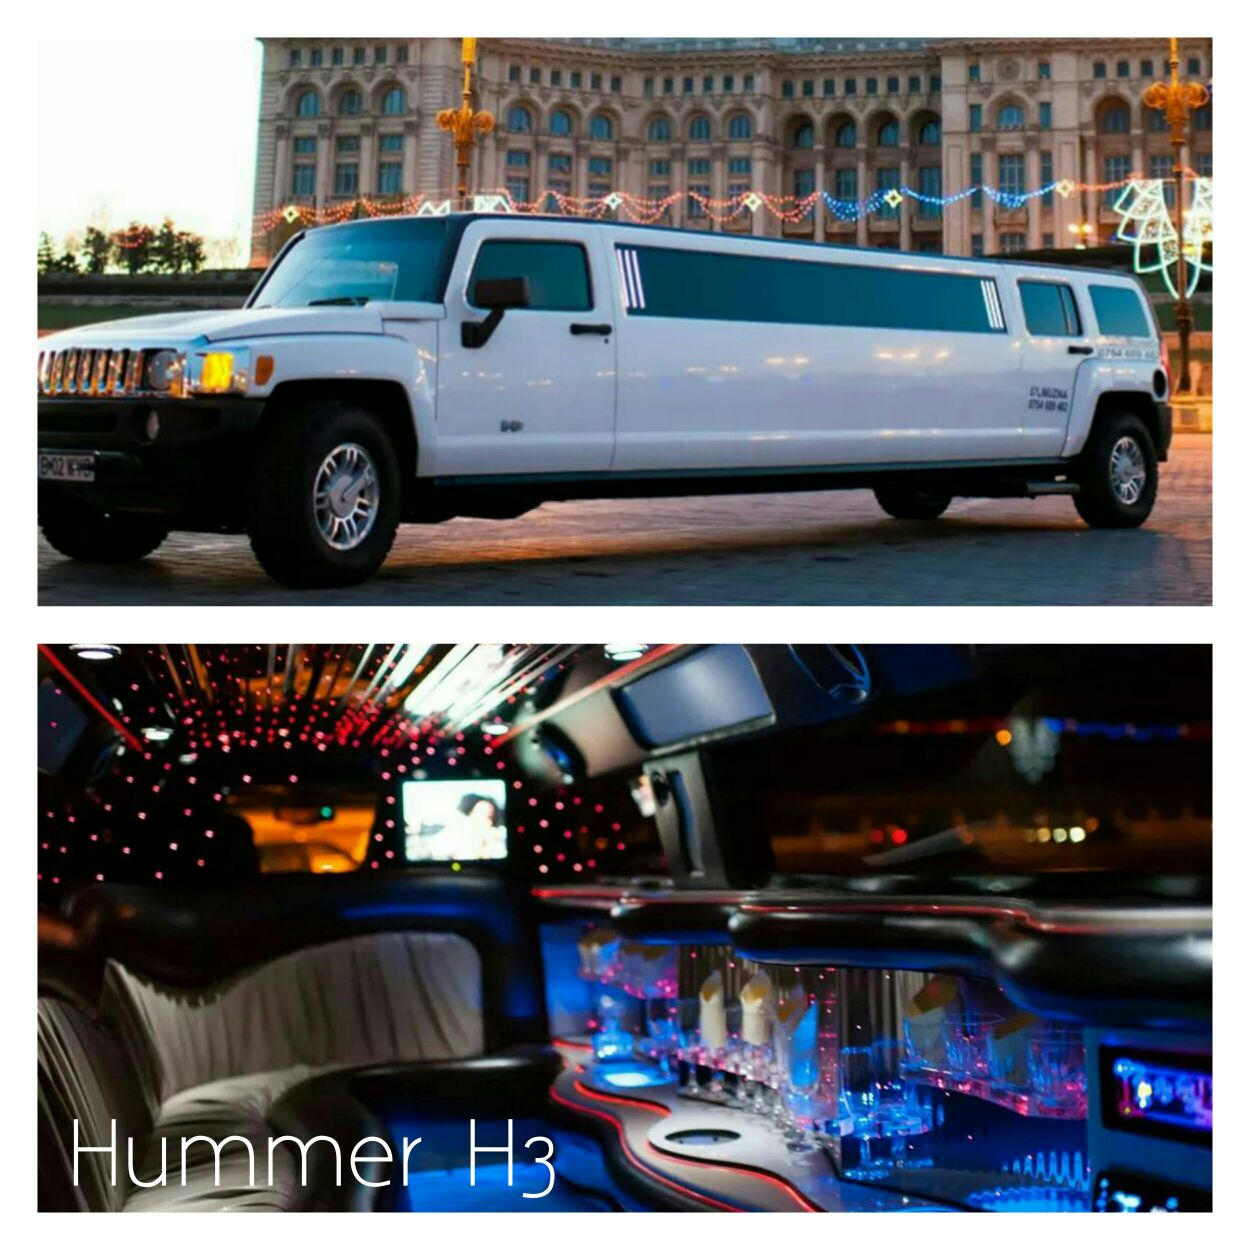 Limousine hummer in romania